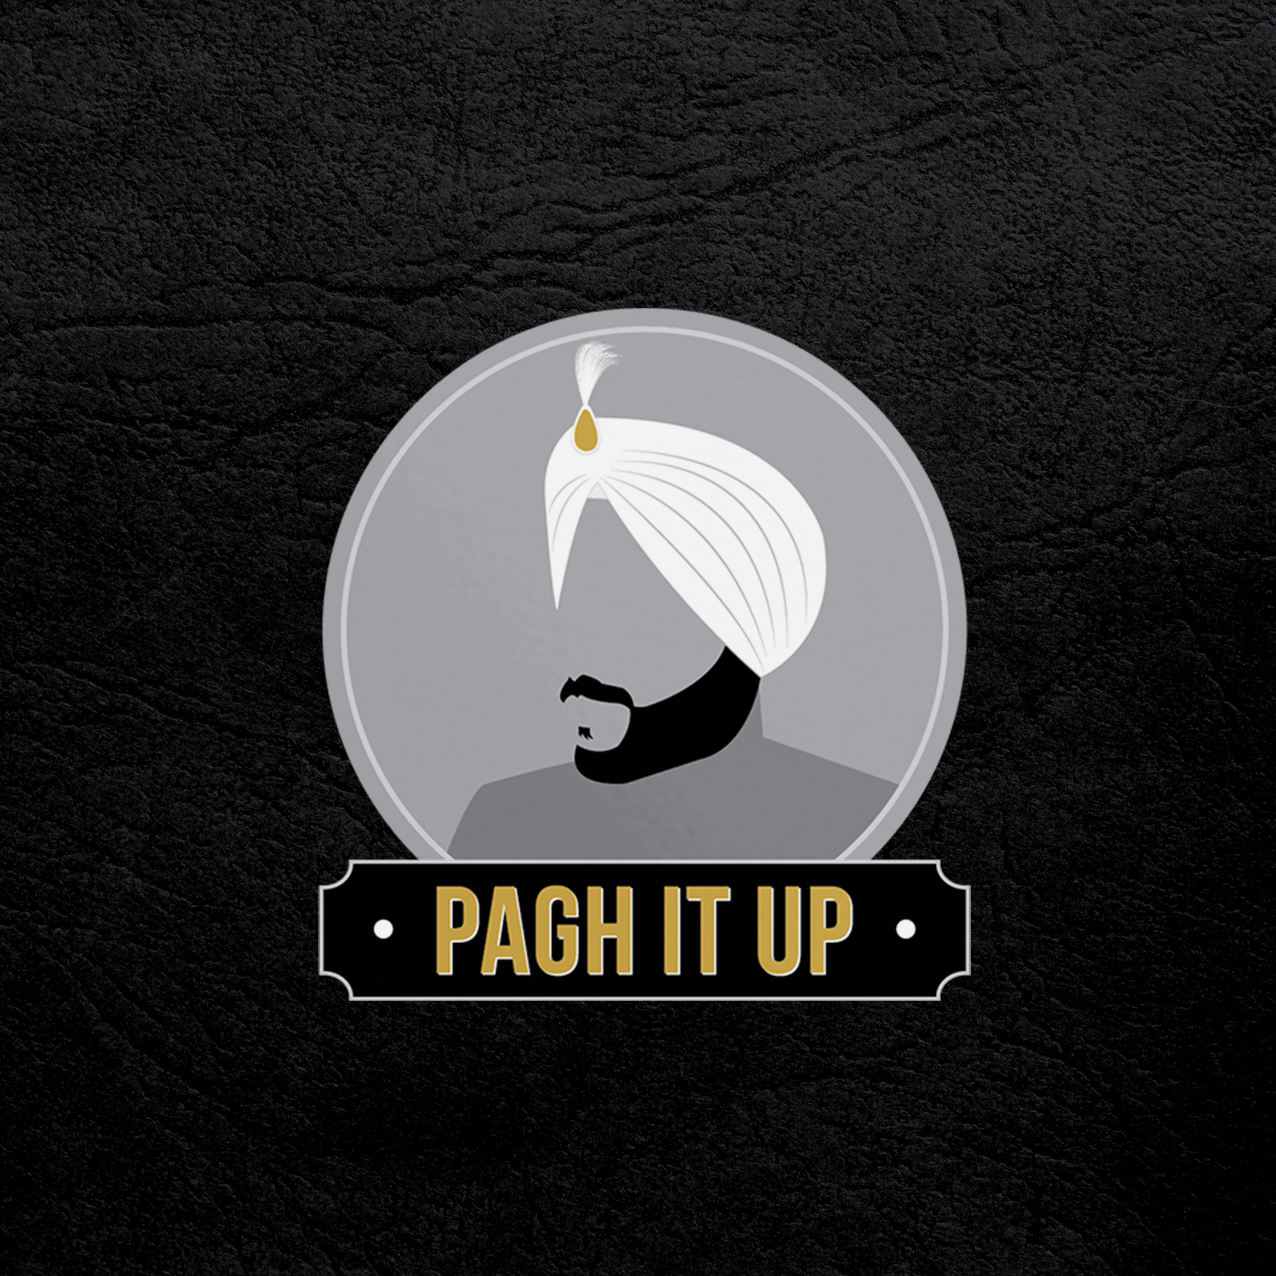 paghitup.png